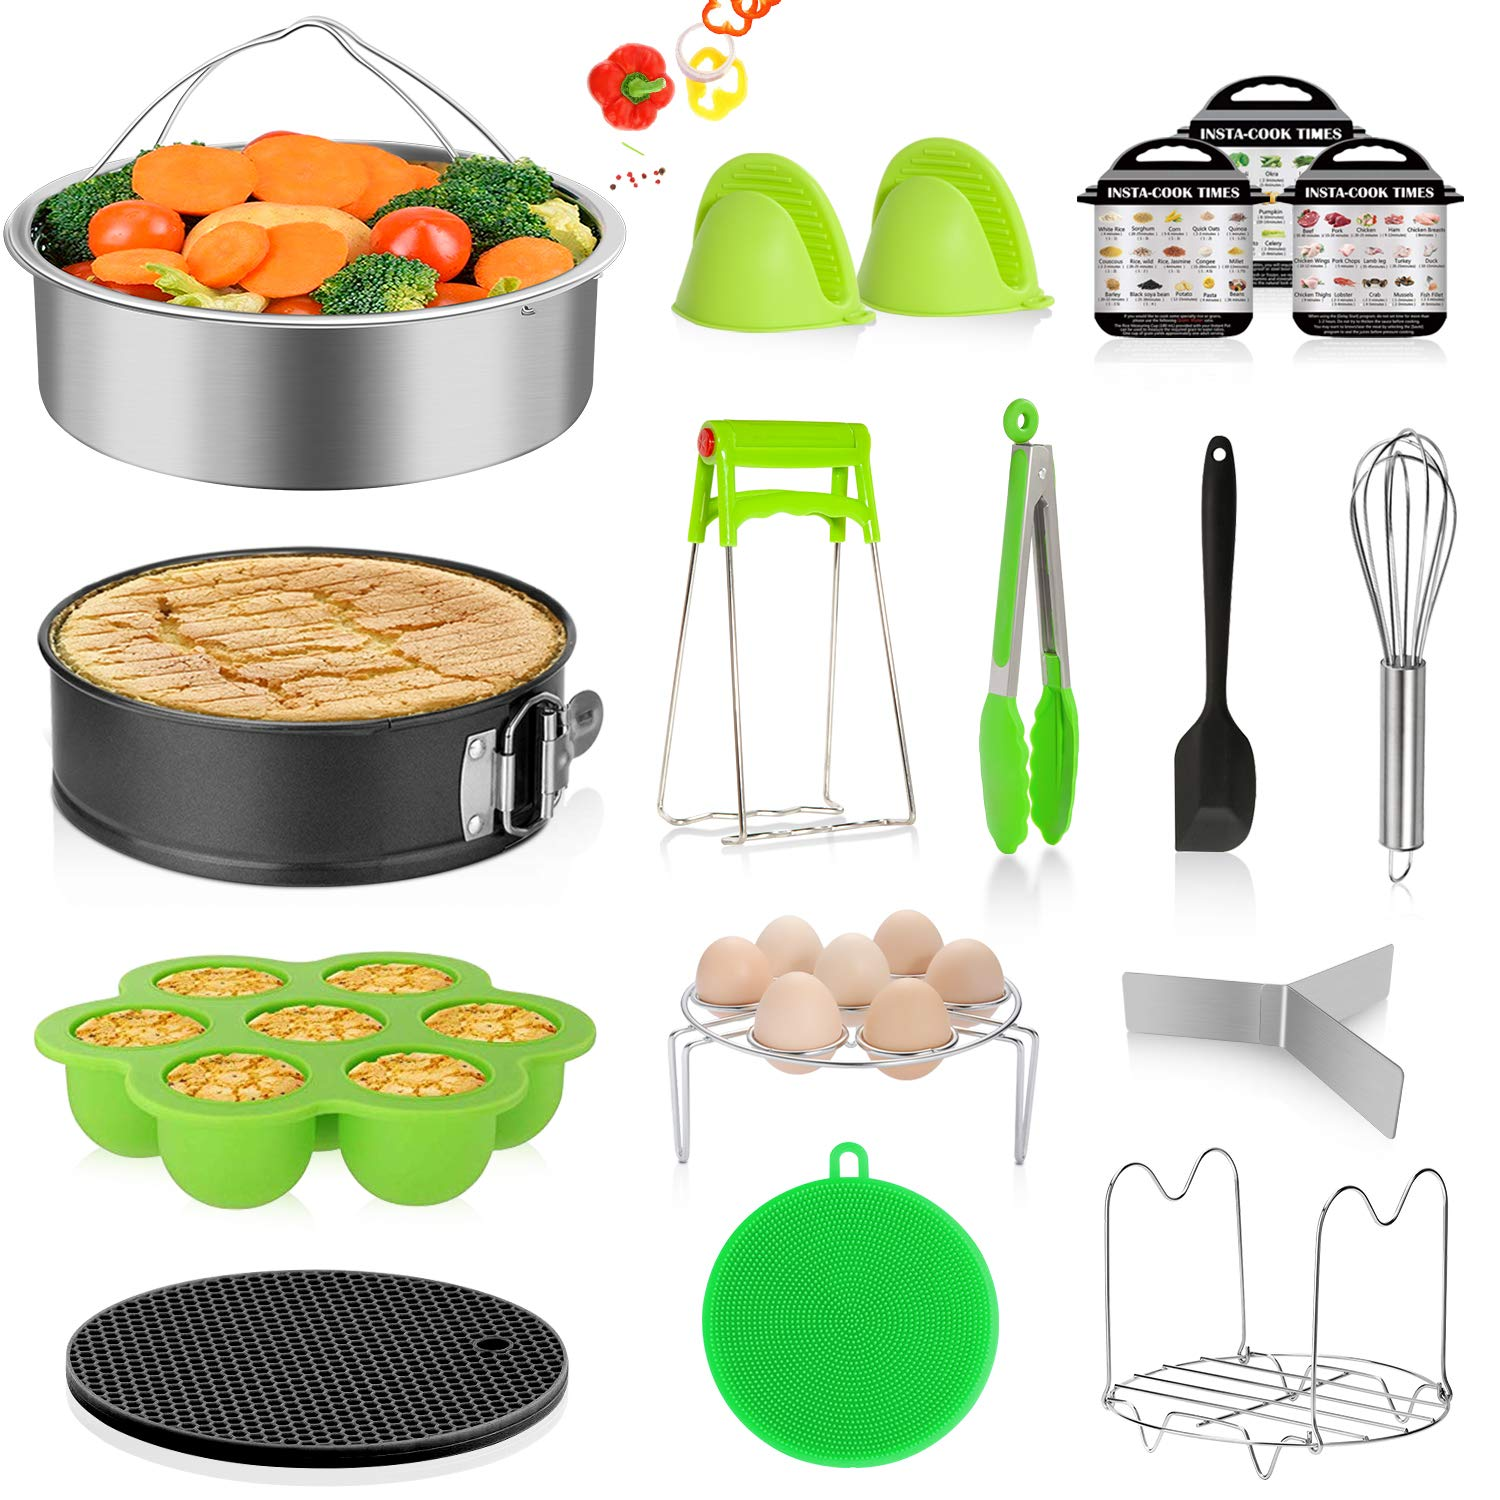 MIBOTE 17pcs Pressure Cooker Accessories Set fits Instant Pot 5,6,8 Qt, Steamer Baskets, Springform Pan, Egg Steamer Rack, Egg Bites Mold, Kitchen Tong, Silicone Pad, Oven Mitts, Cheat Sheet Magnet